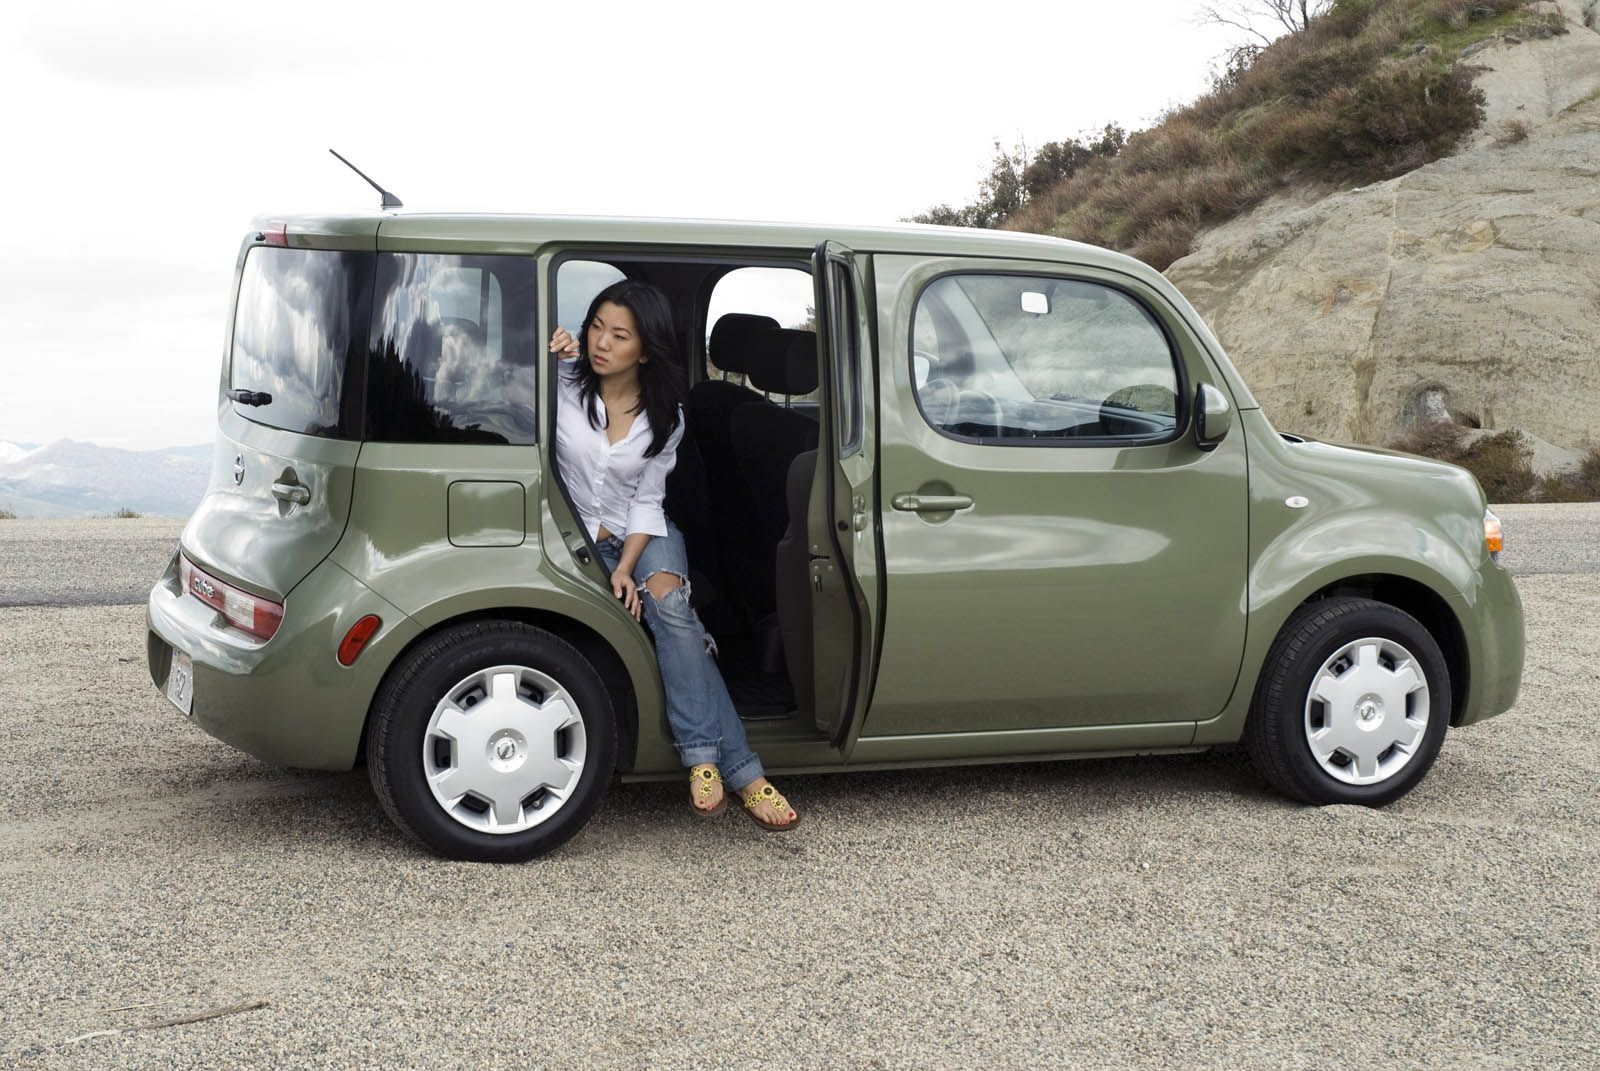 Check out this wild nissan cube tricked out nissans pinterest check out this wild nissan cube tricked out nissans pinterest nissan custom cars and cars vanachro Choice Image